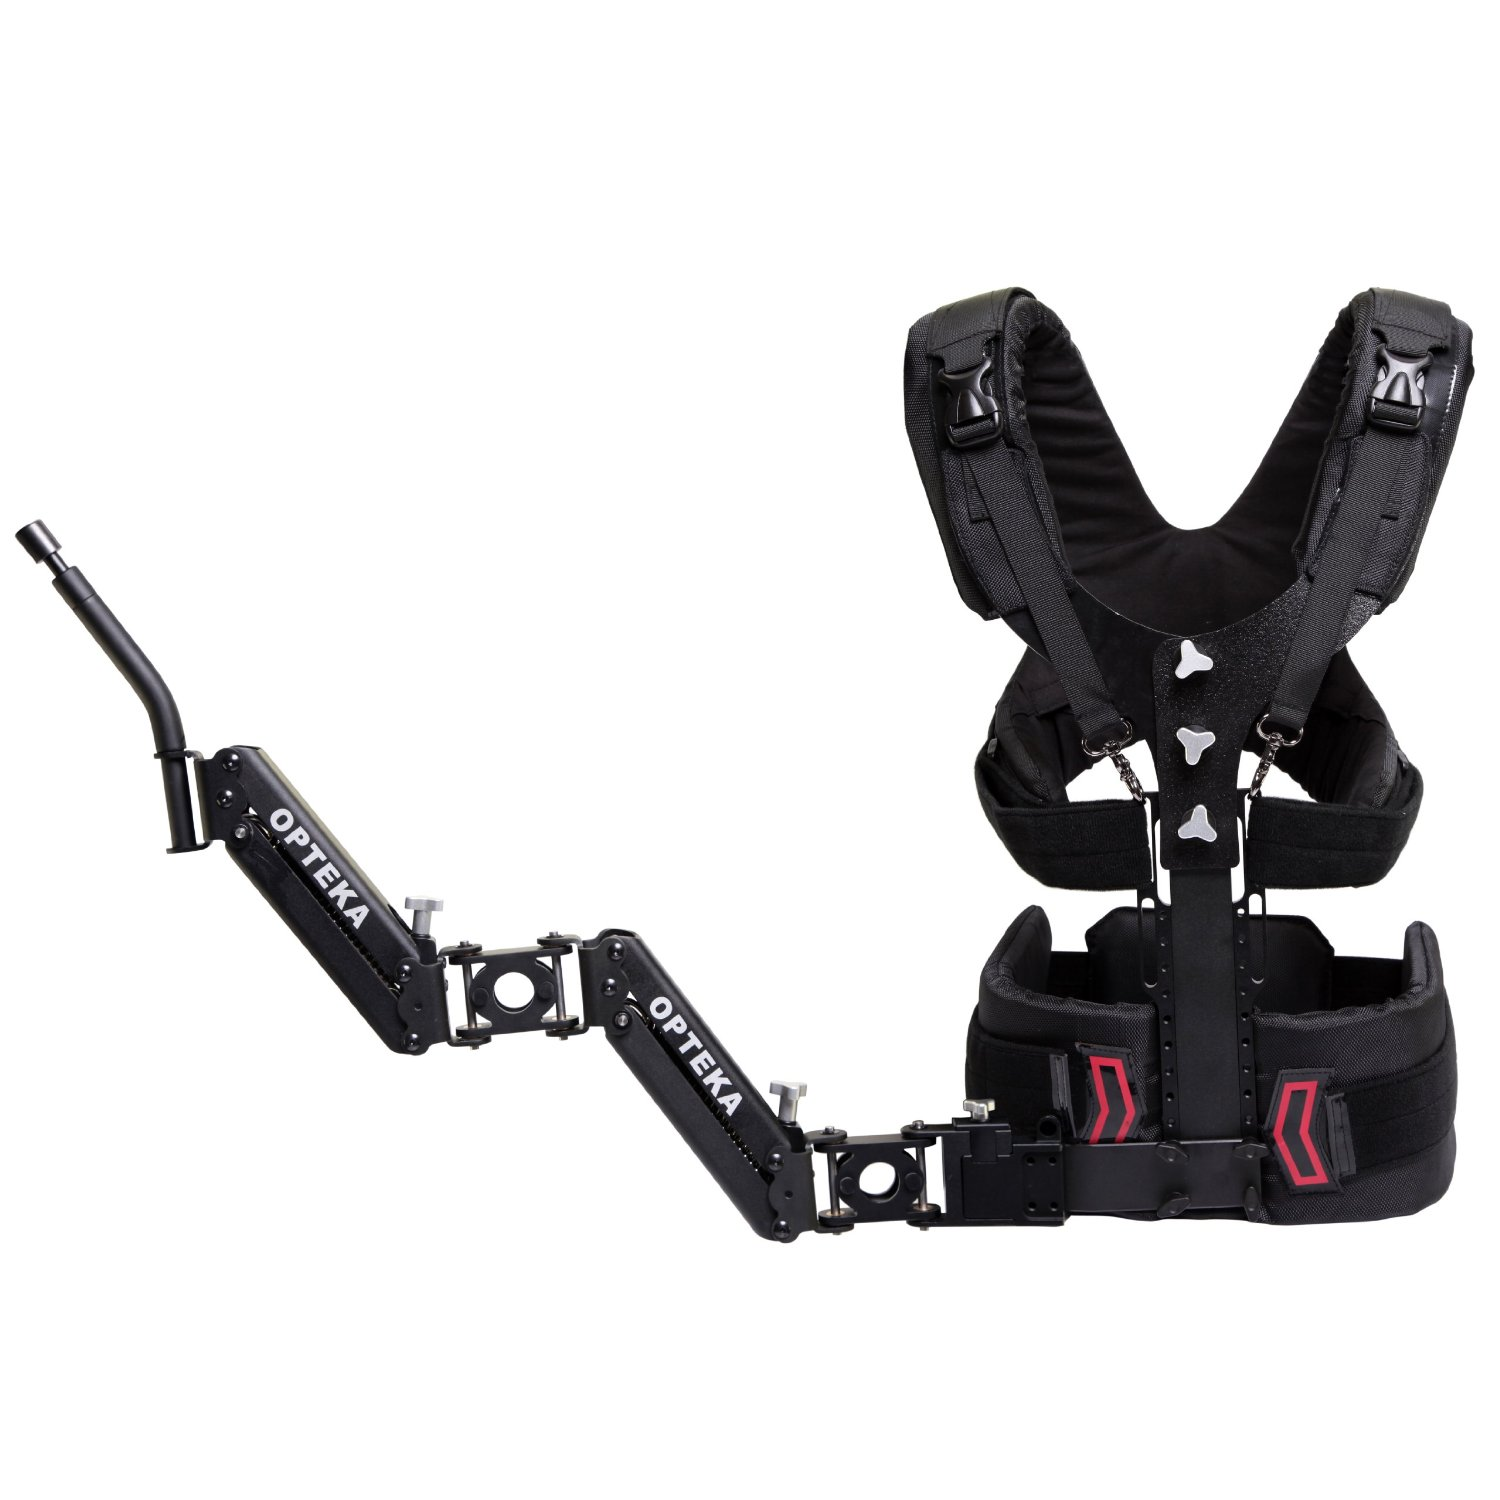 Opteka SV-AX5 Stabilizer Operator Vest with Swing Arm for the Opteka SteadyVid EX, SteadyVid PRO & Steadicam Merlin Stabilization Systems